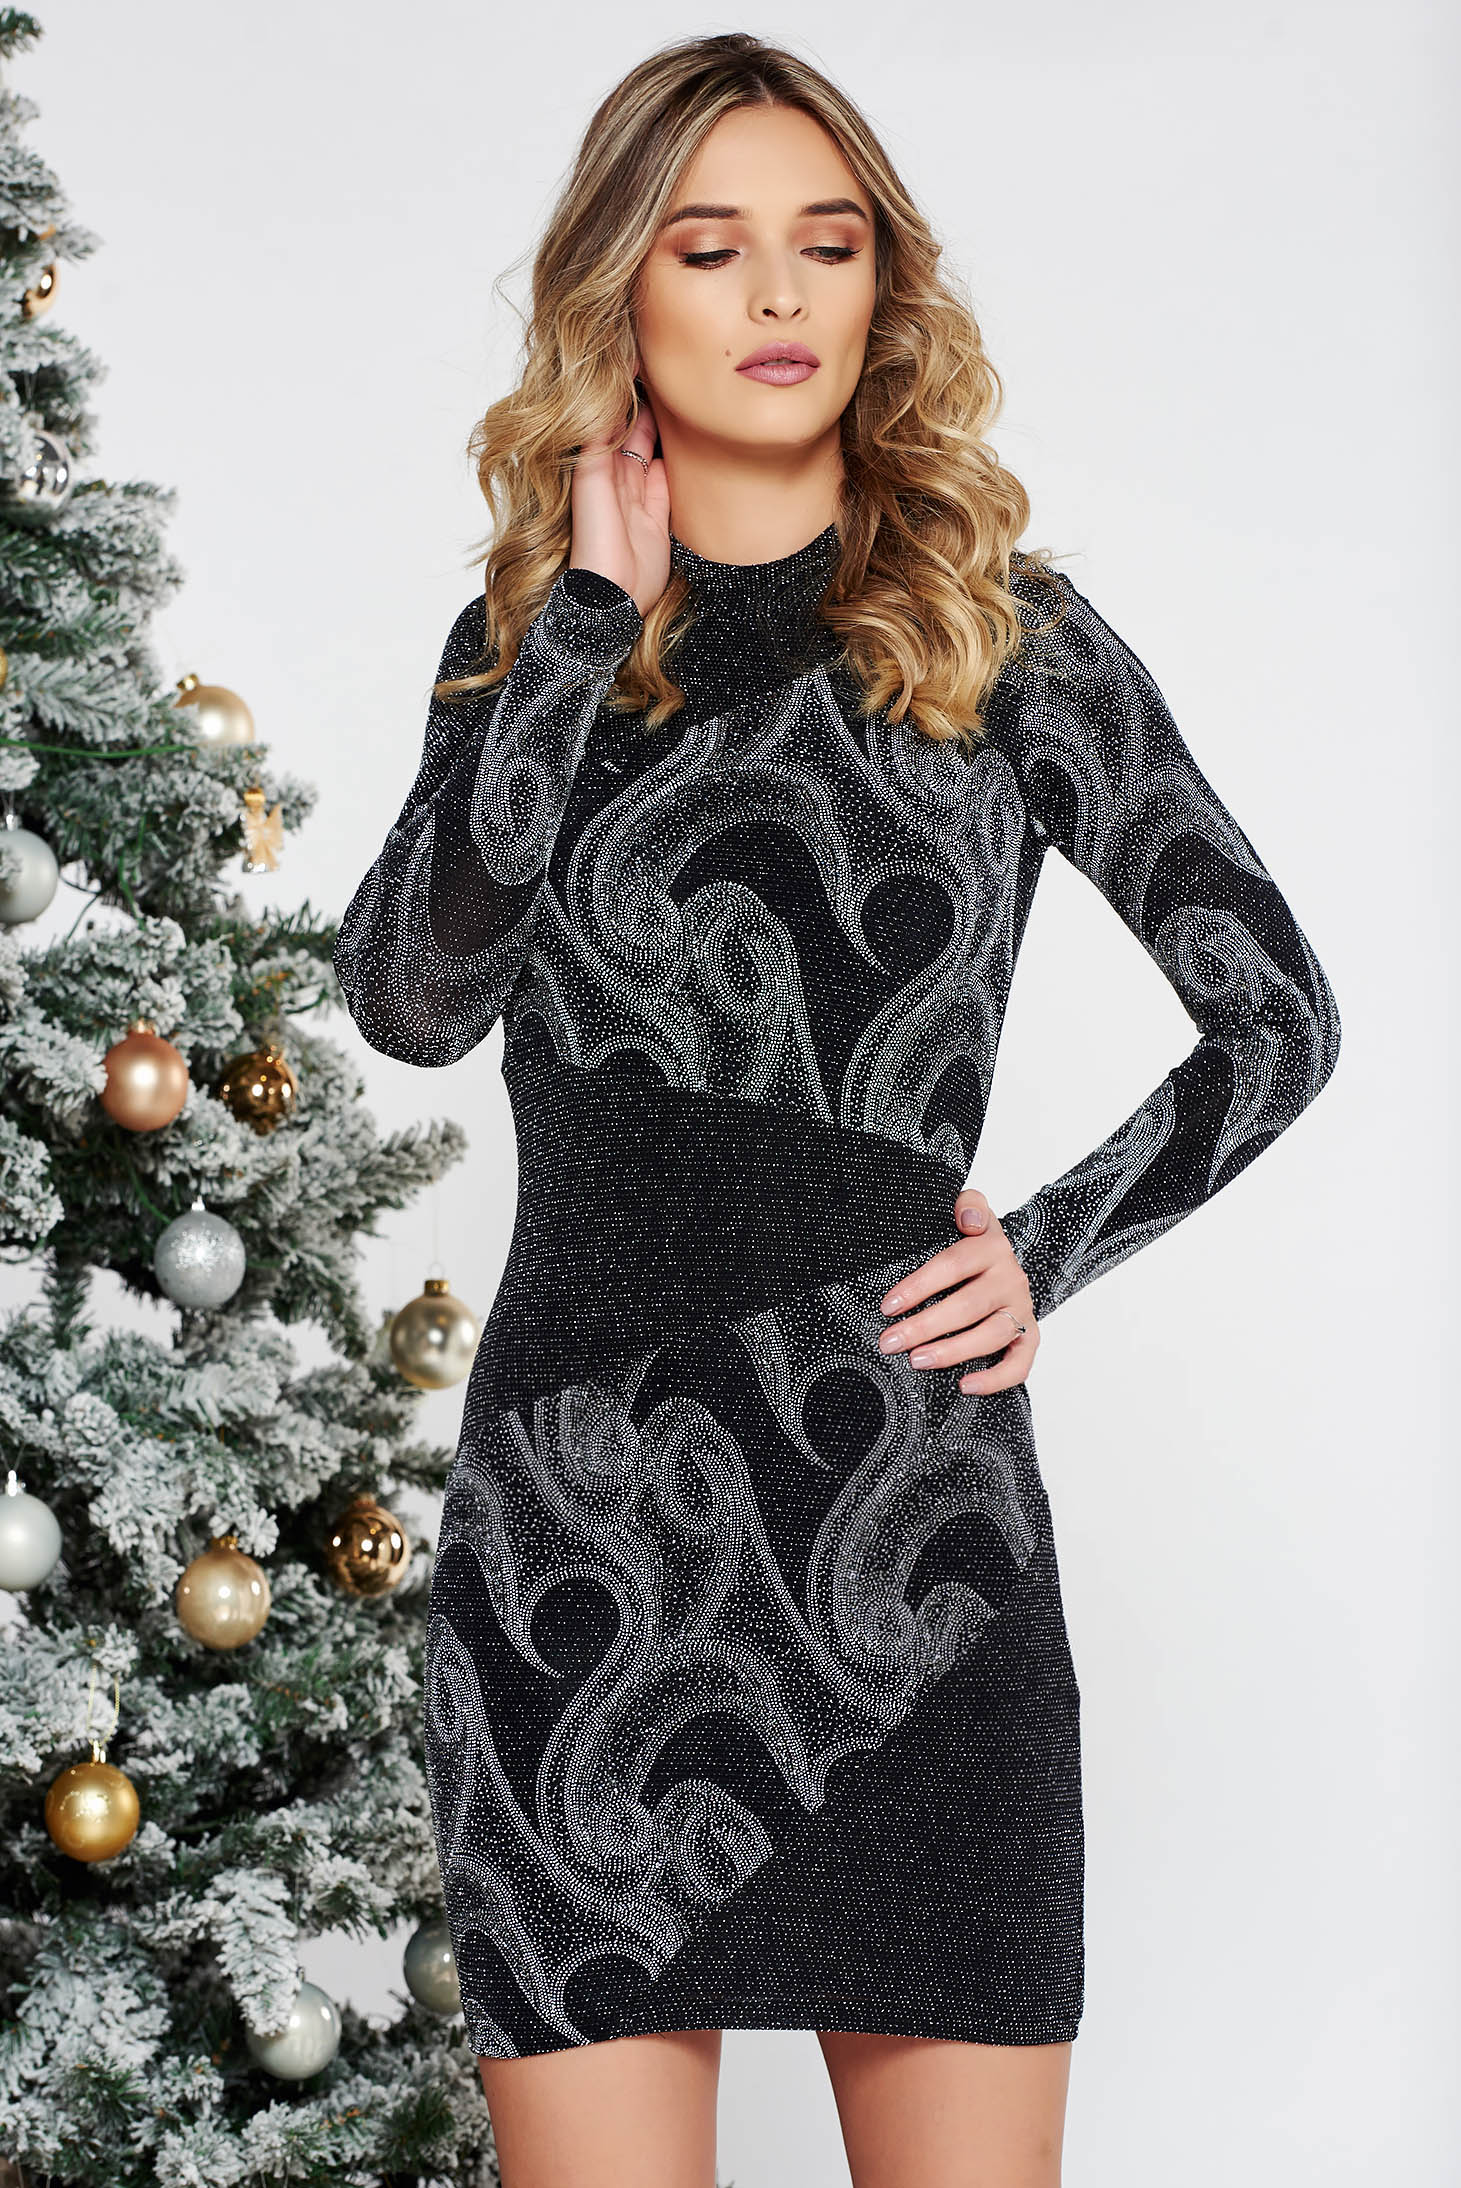 Silver occasional dress with tented cut shimmery metallic fabric long sleeve